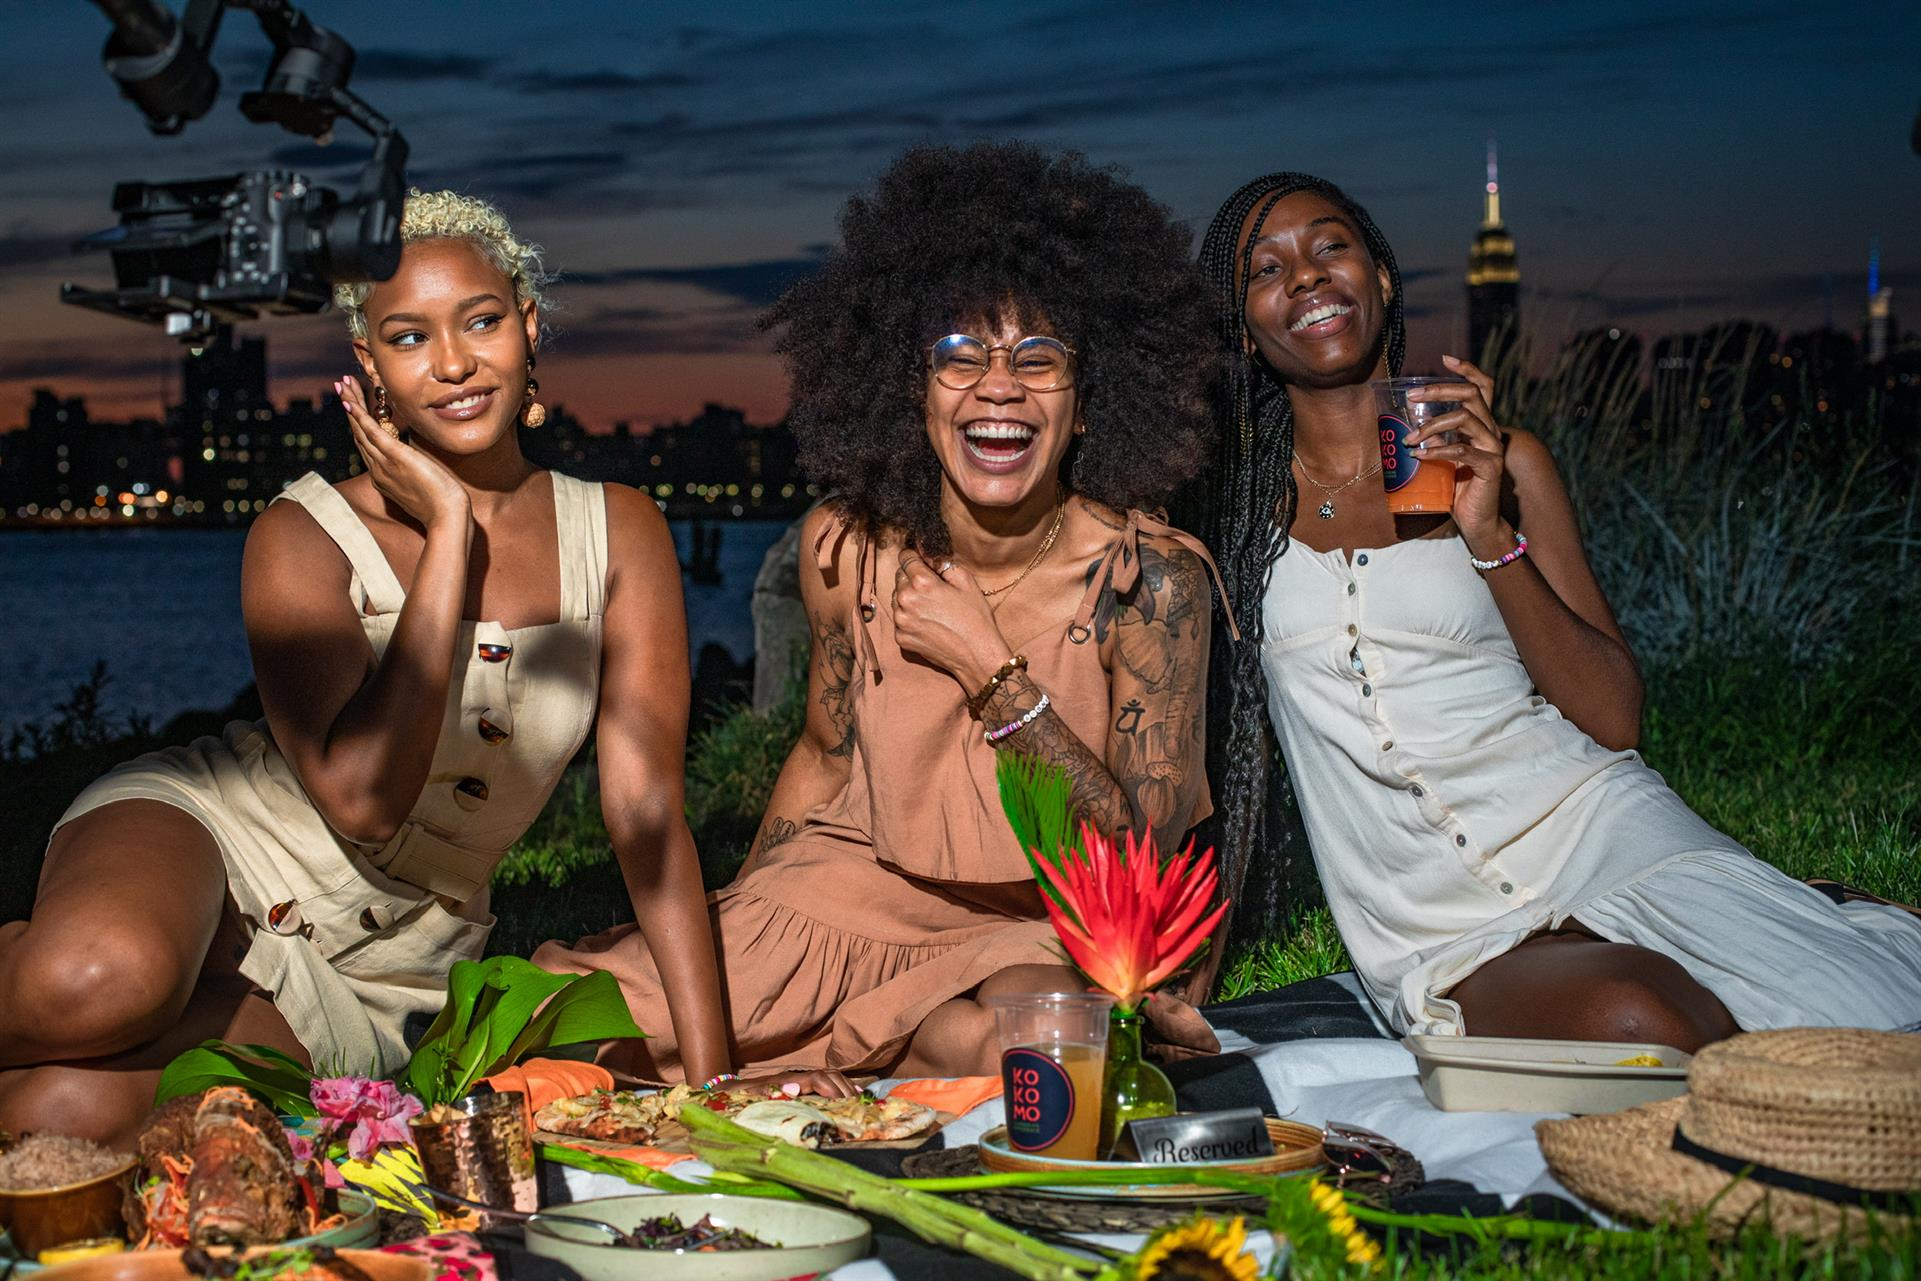 Three women smiling sitting on grass with city skyline in background and array of food in front of them.